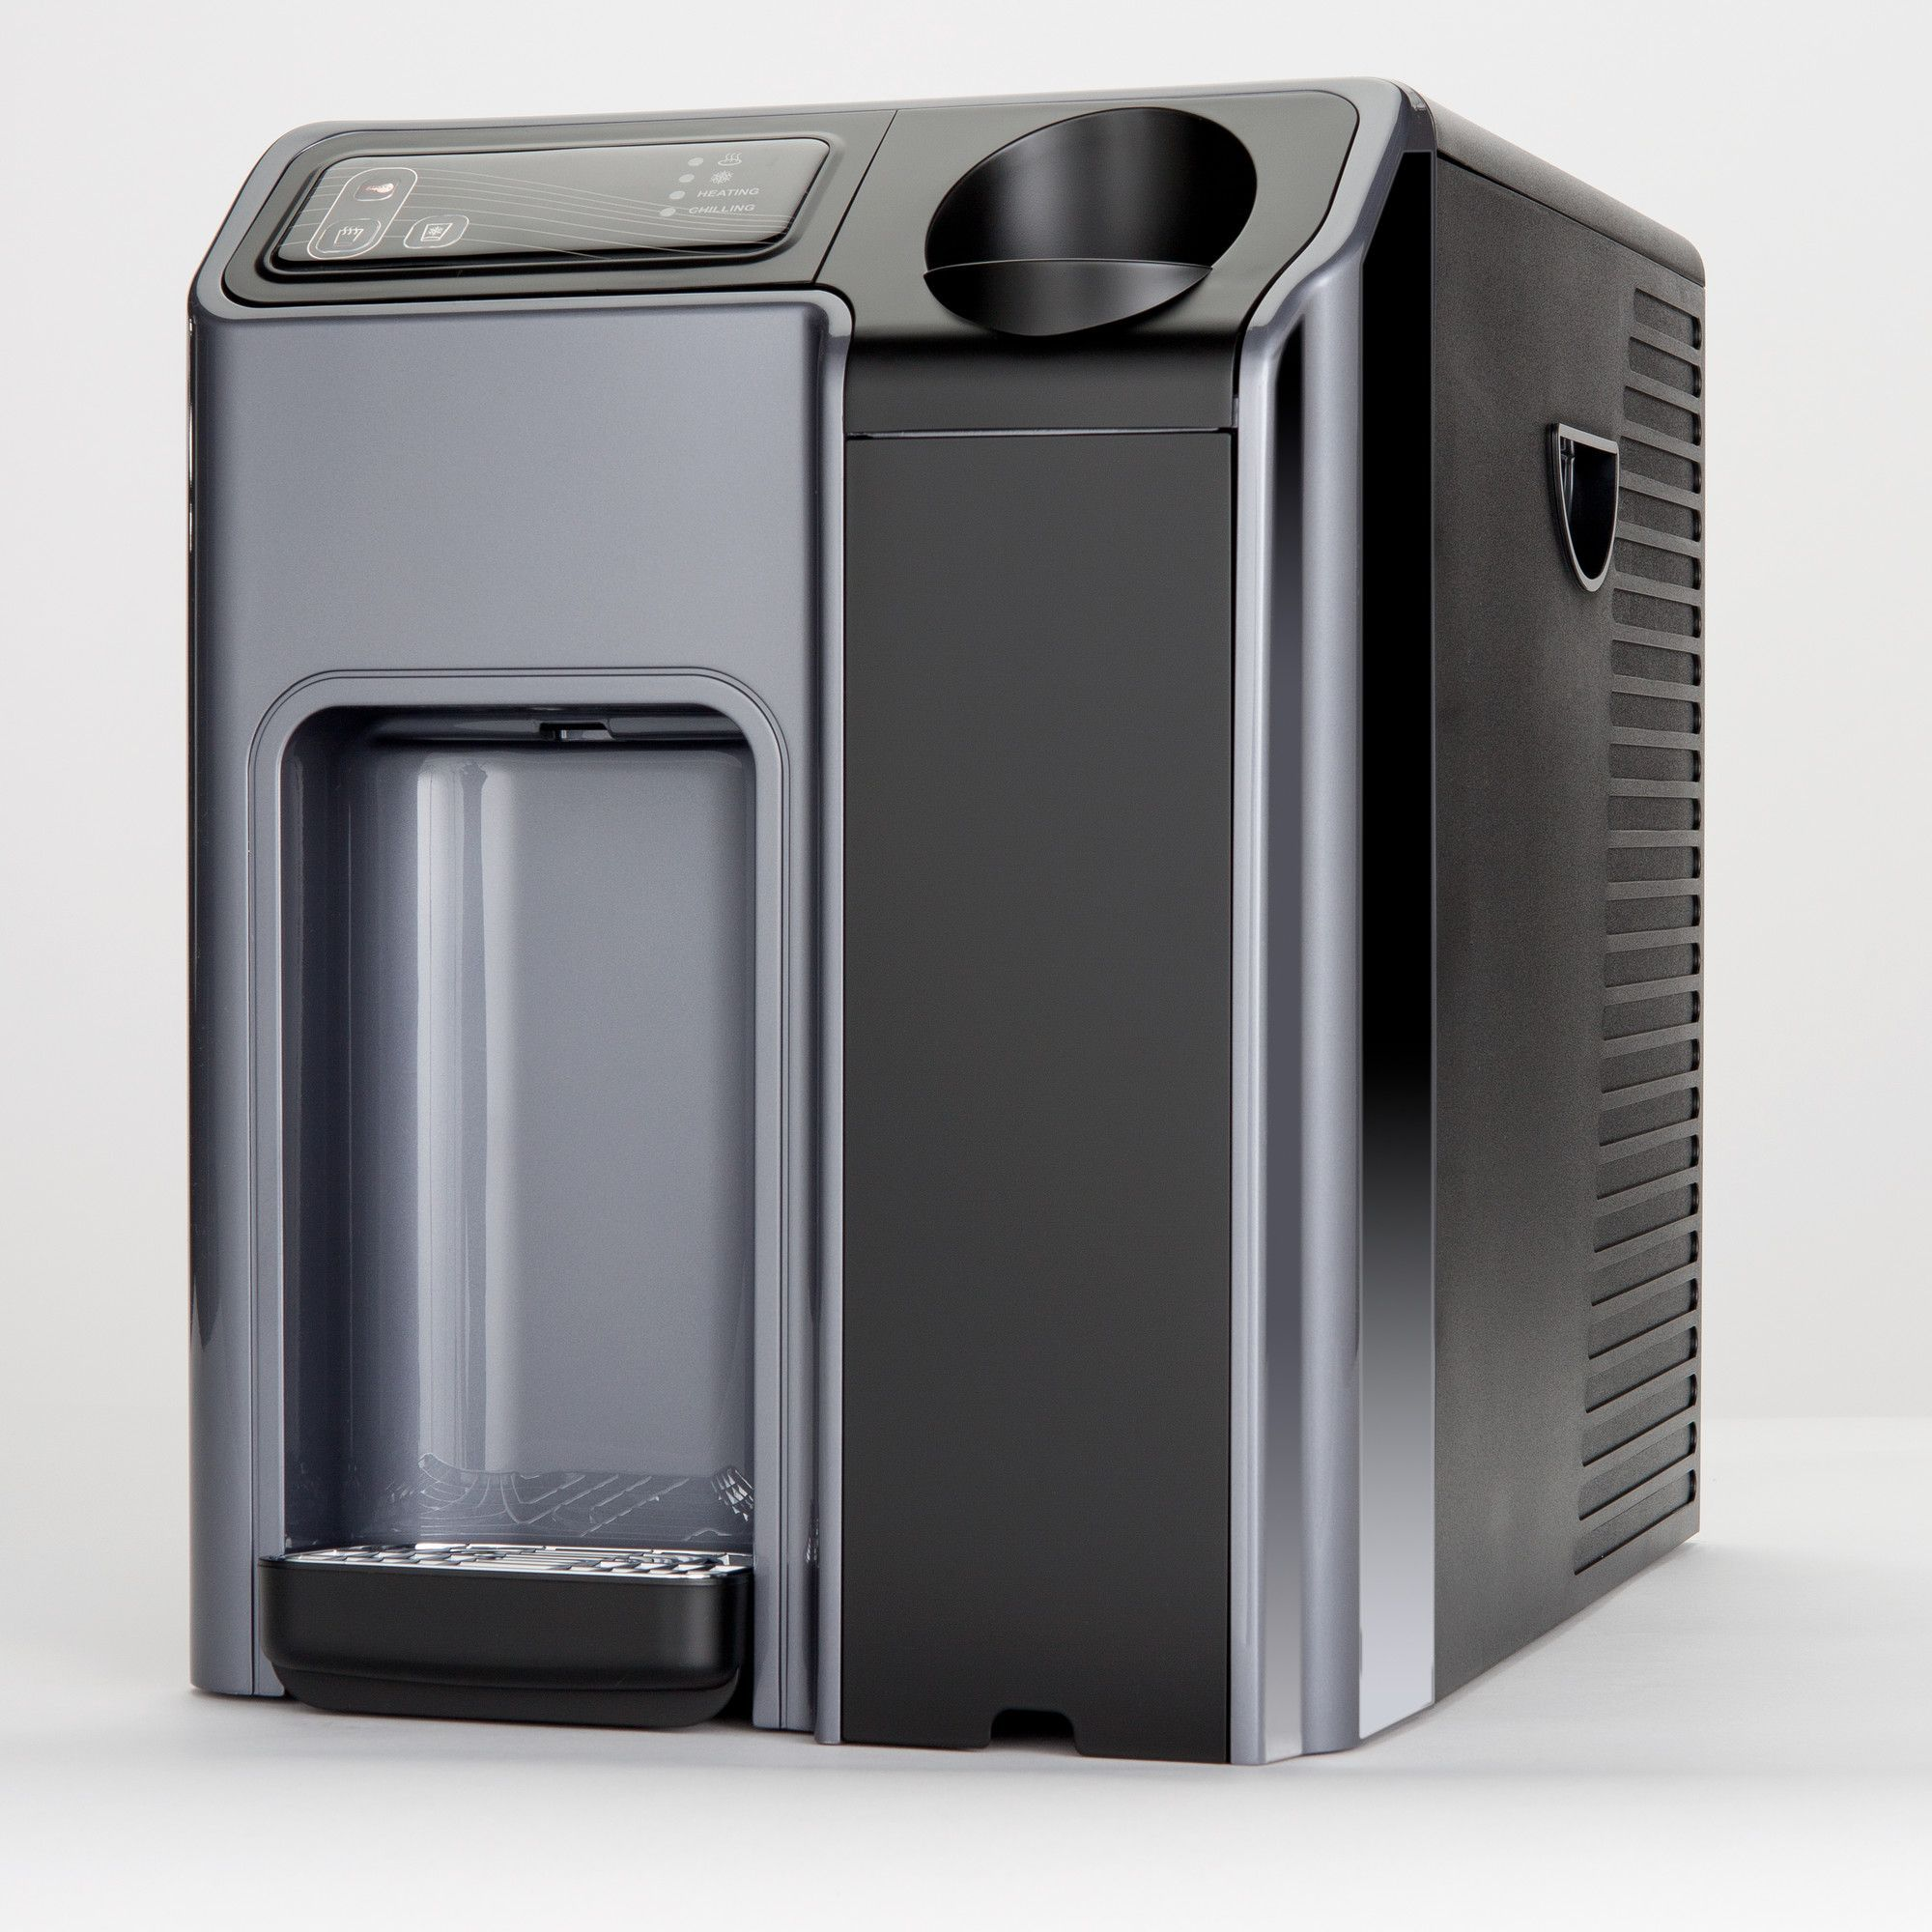 Hot and Cold Countertop Water Cooler in Silver and Black | Products ...